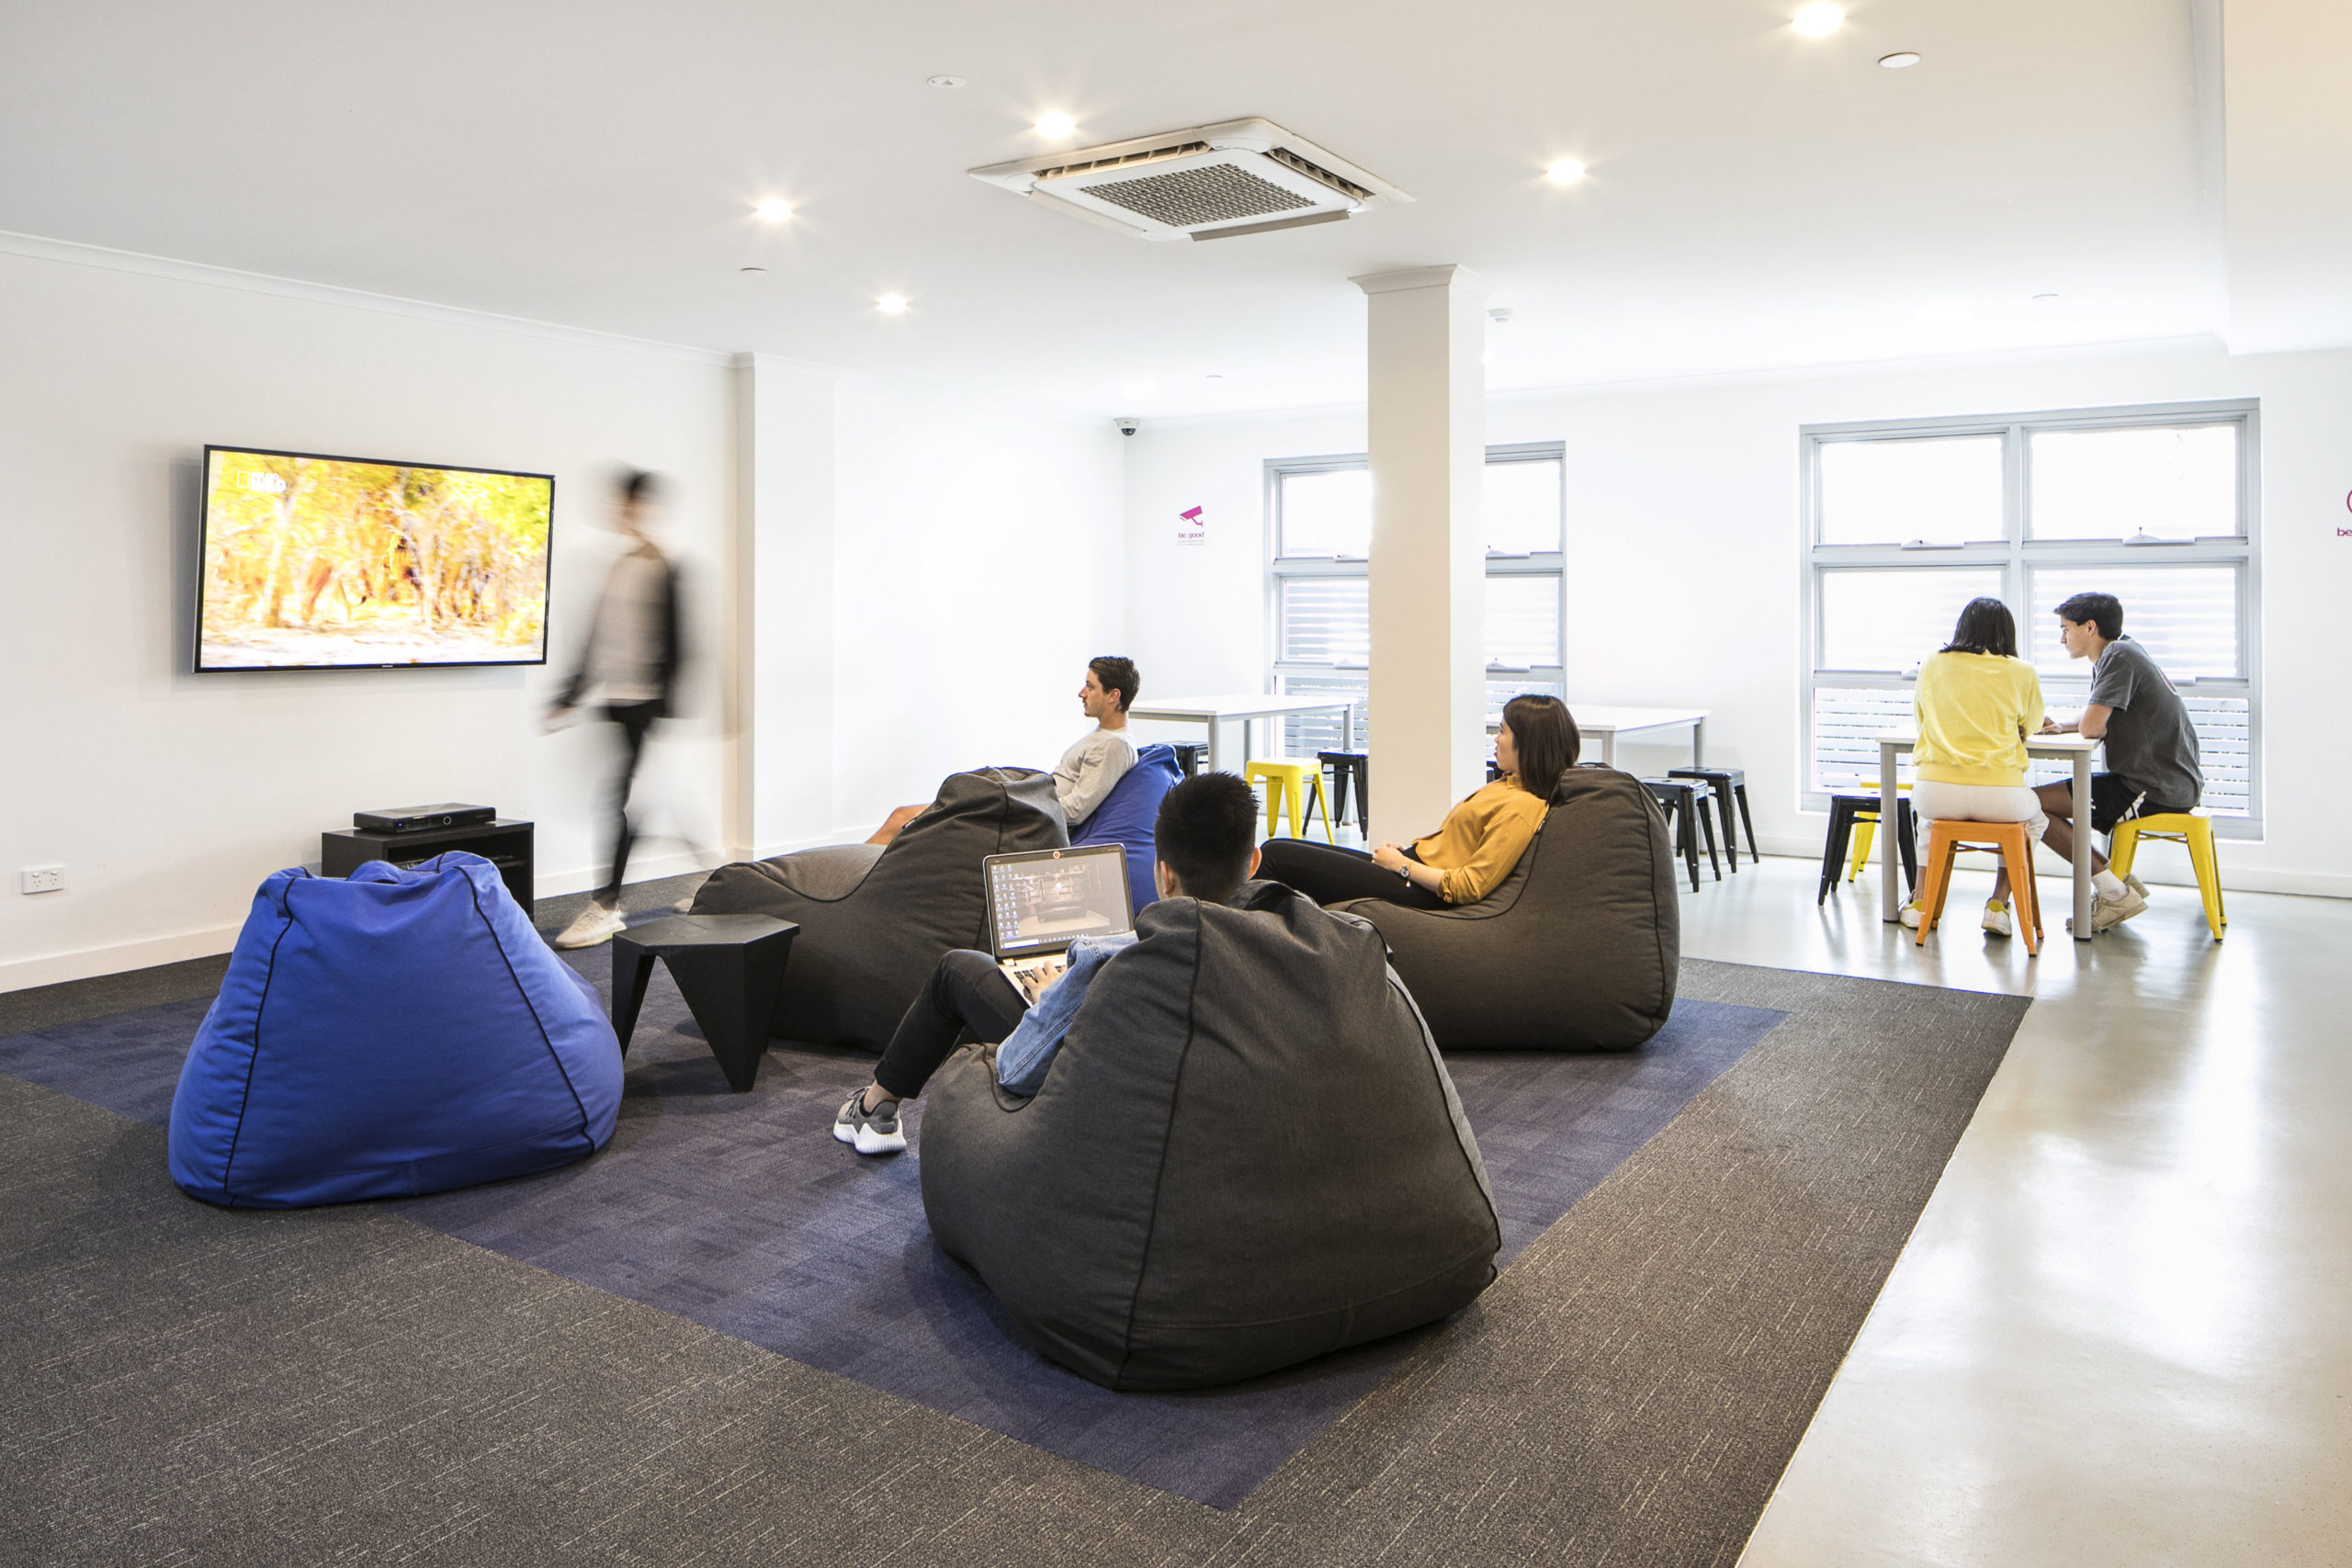 Student Accommodation in Maroubra